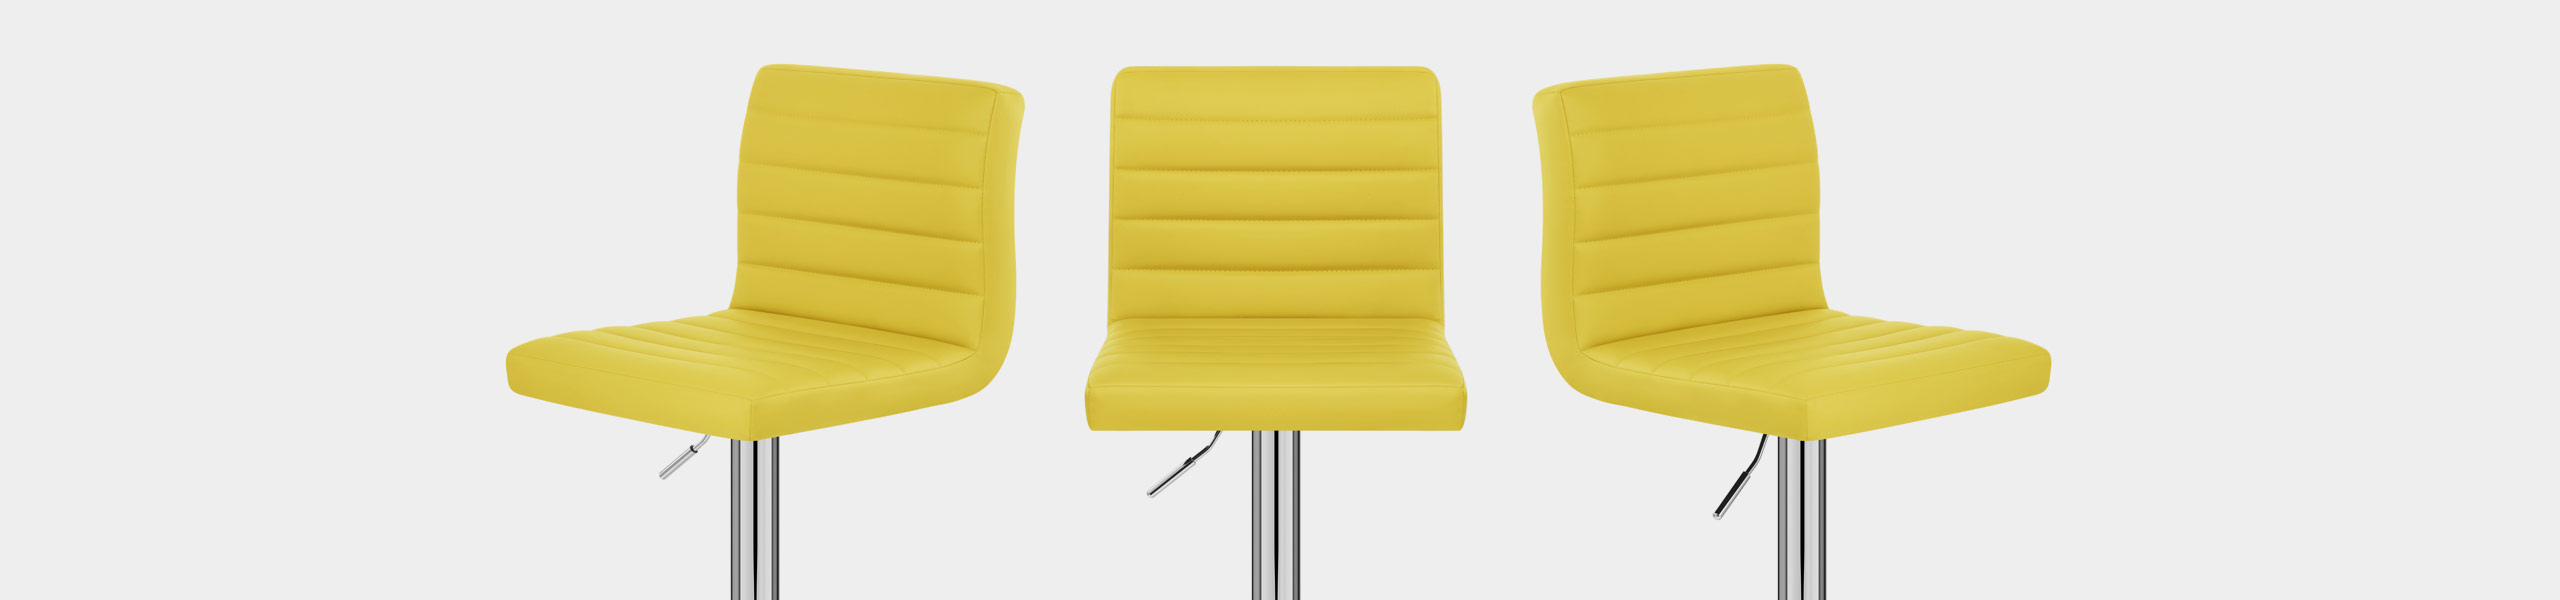 Mint Bar Stool Yellow Video Banner